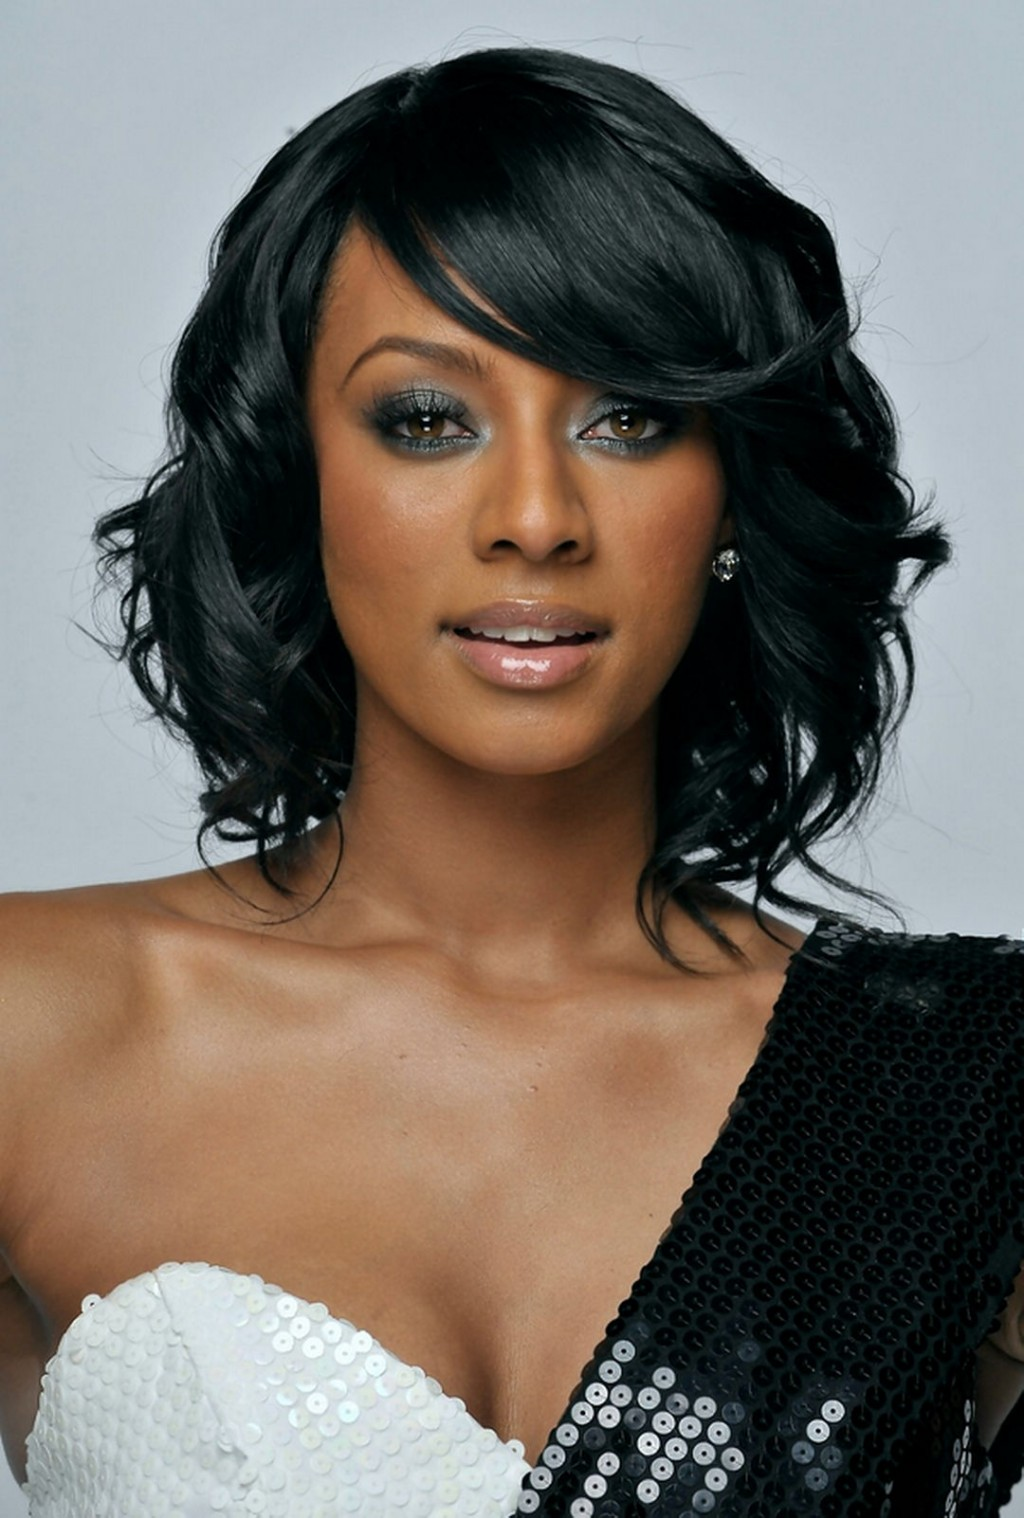 Bob Layered Hairstyles For Women African American Wallpaper 8 Fabulous African American